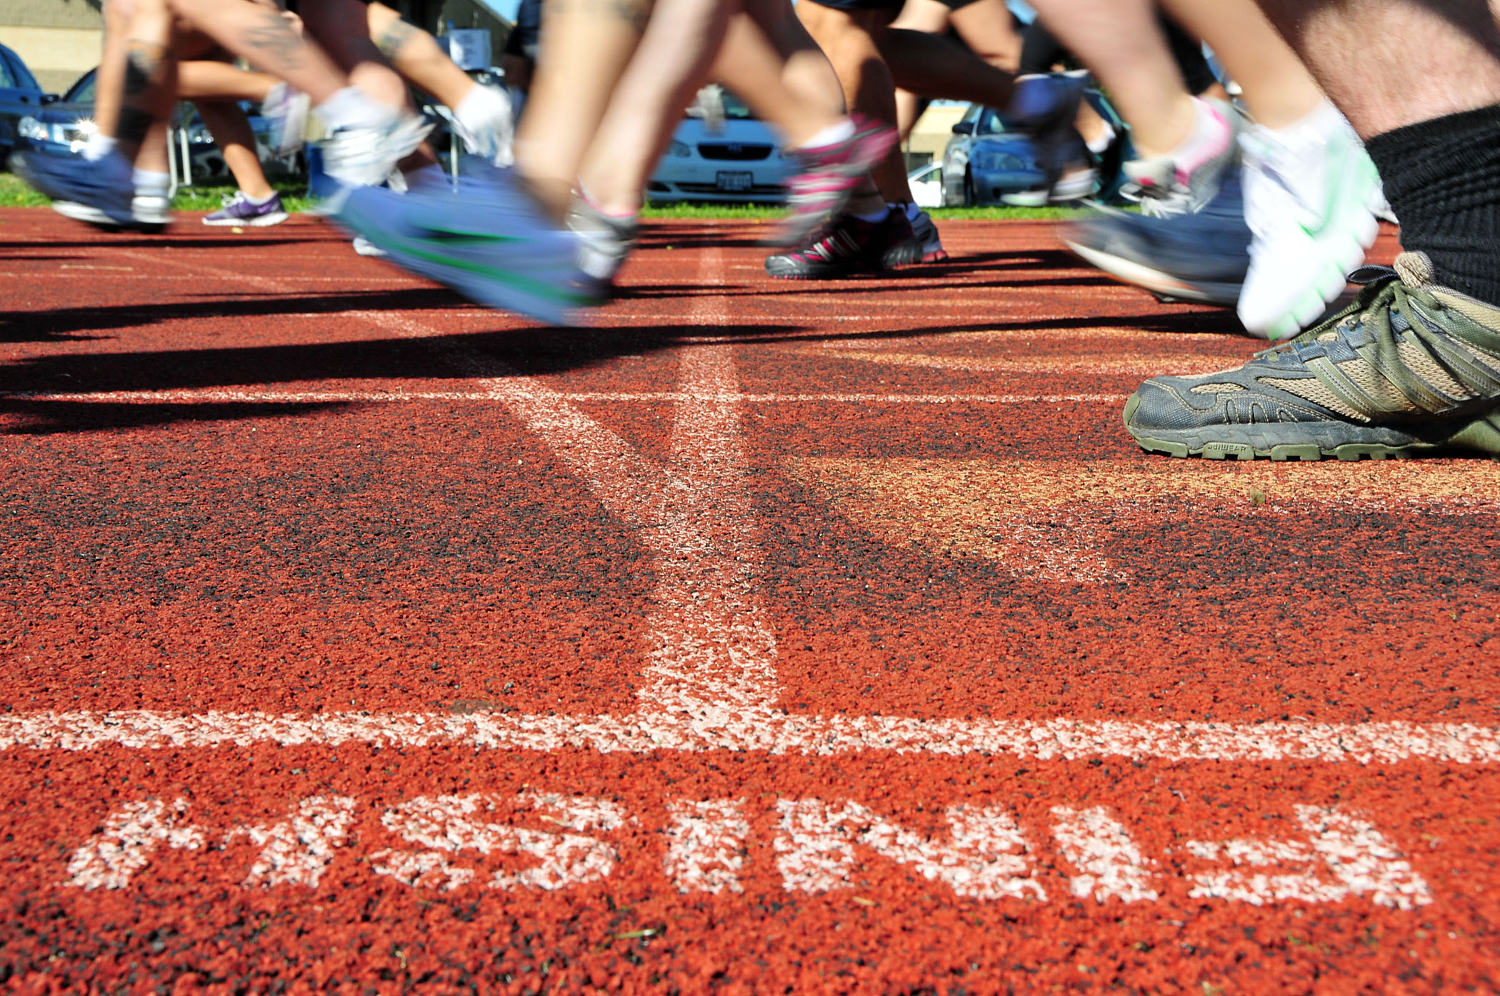 The tougher the journey, the sweeter the finish line.